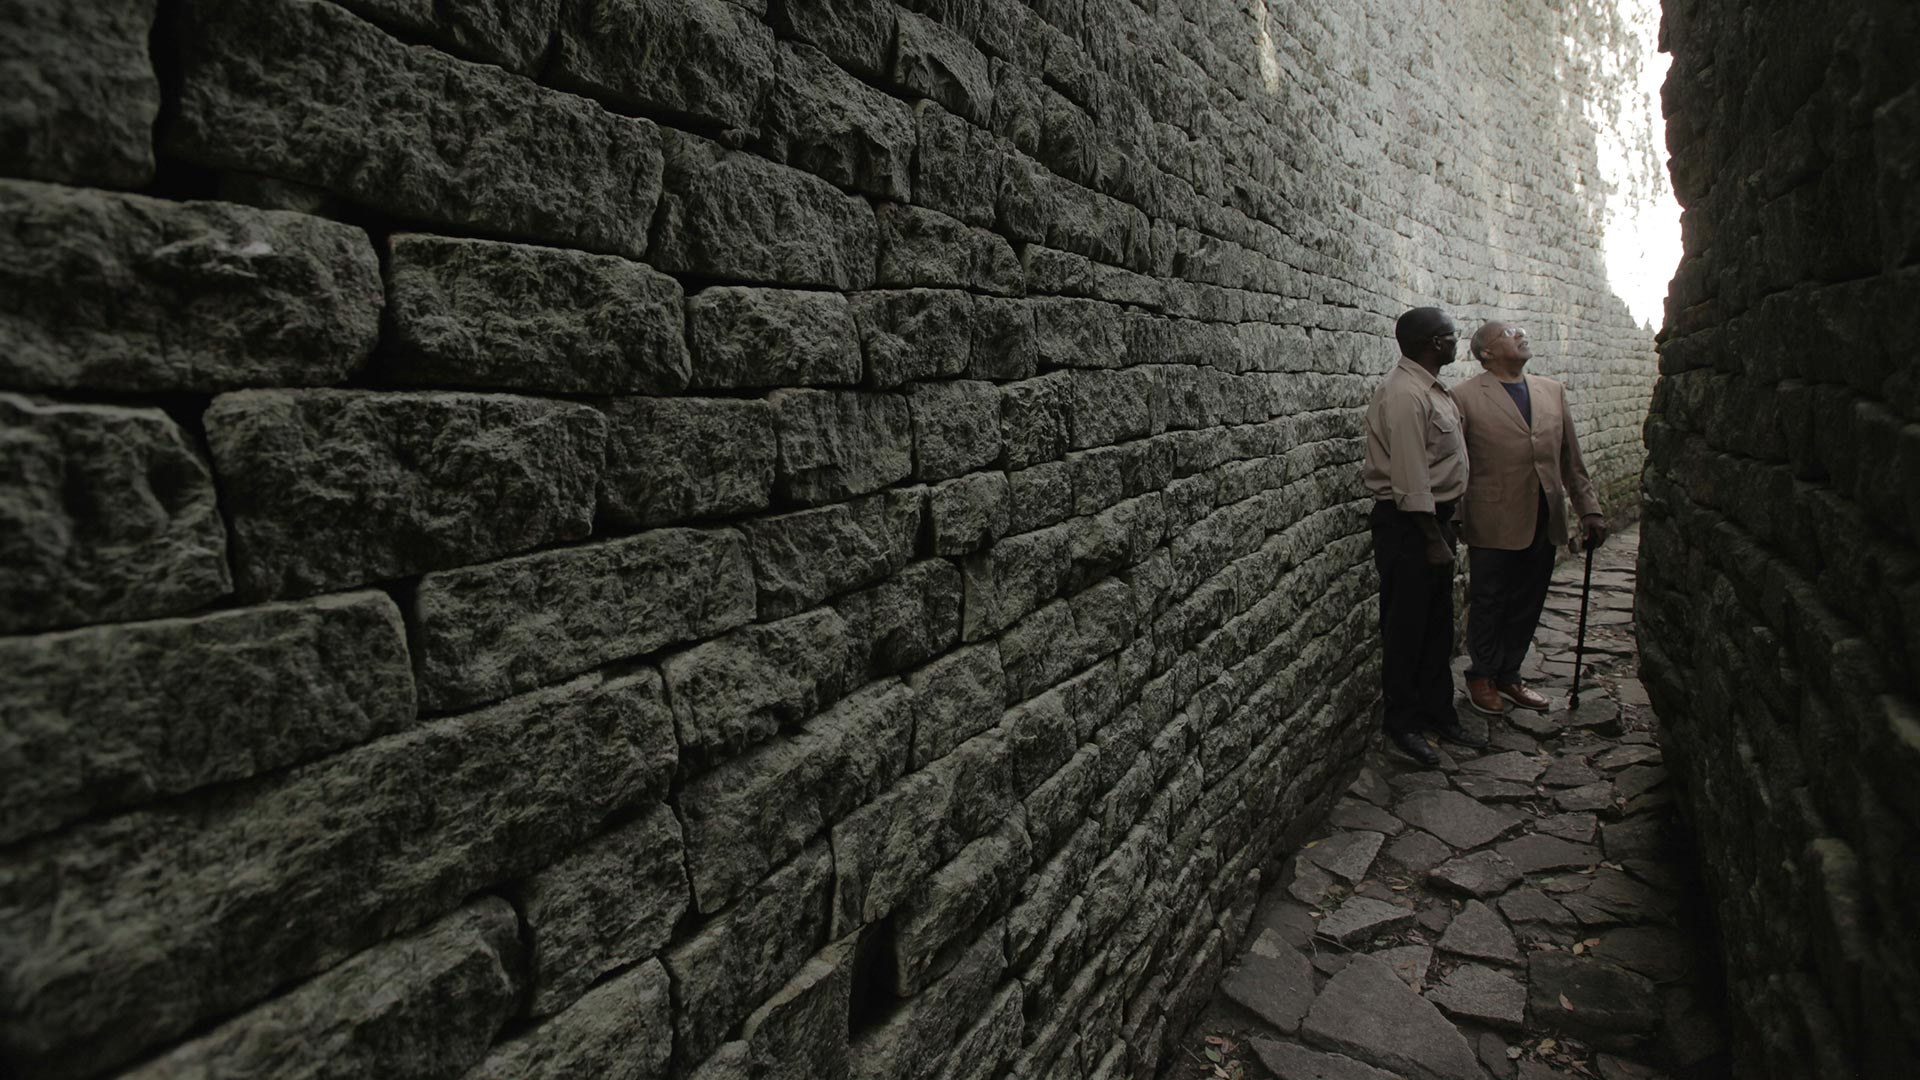 Henry Louis Gates, Jr. and Dr. Edward Matenga take a closer look at Great Zimbabwe, a former capital and ancient city built centuries ago, in Zimbabwe.